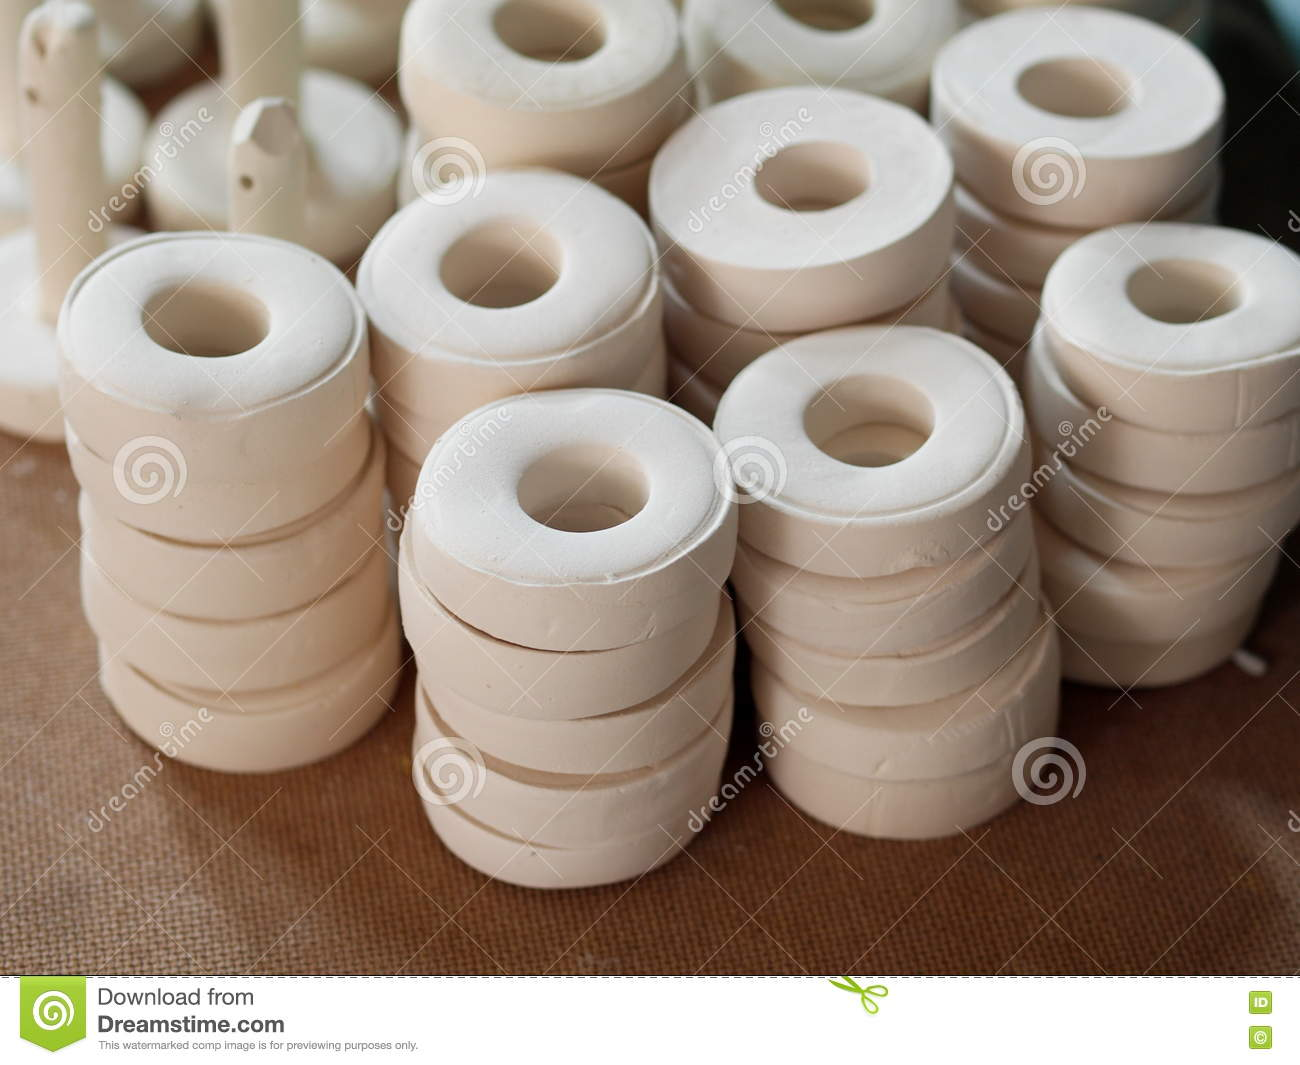 Factory Of Ceramic Clay Royalty Free Stock Photo